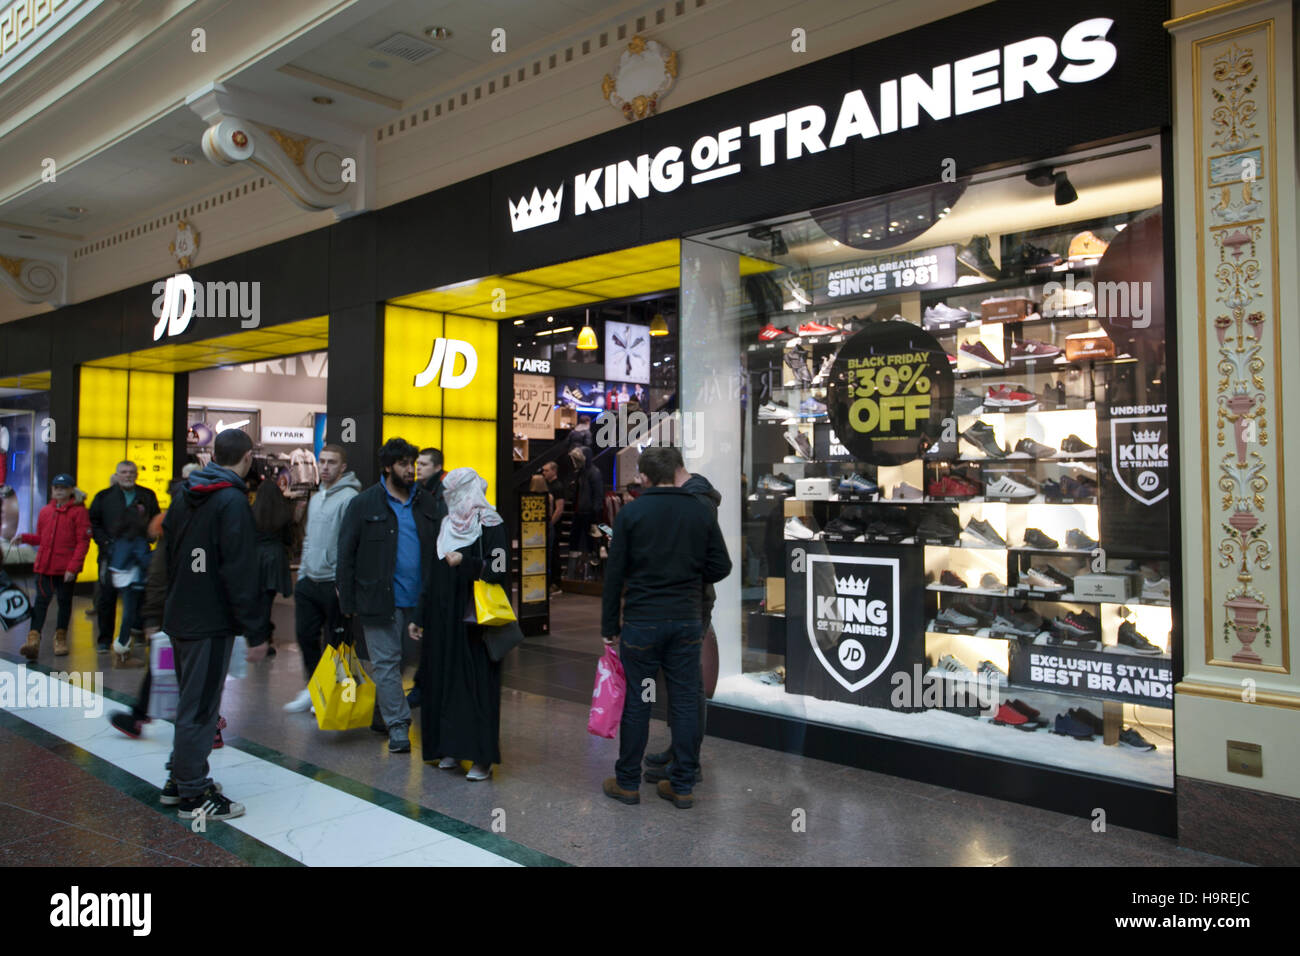 Trainers at INTU Trafford Centre Stock